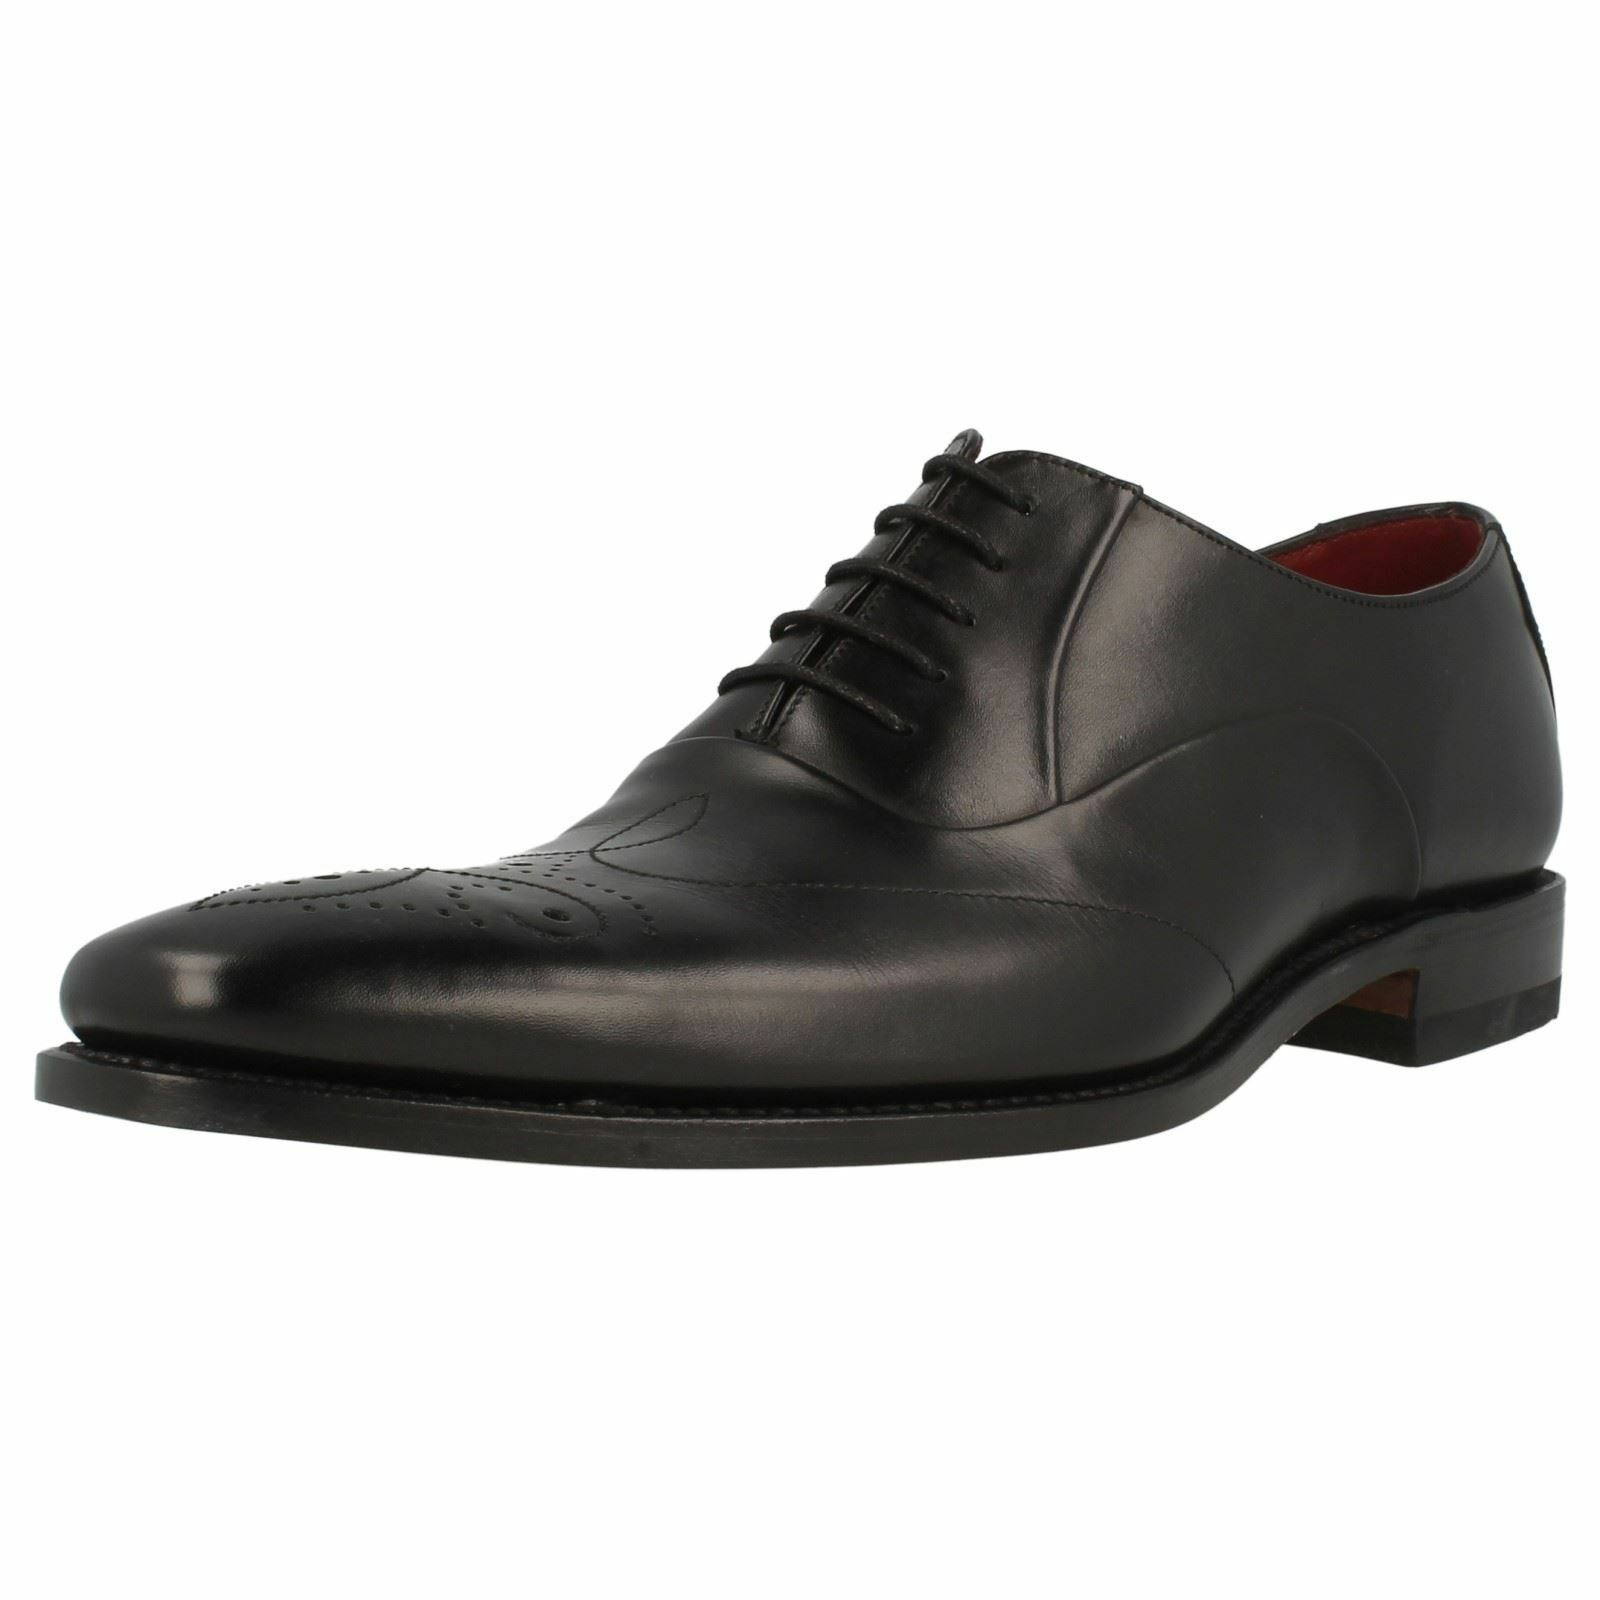 Mens Design Loake Gunny Black Leather Lace Up Shoes